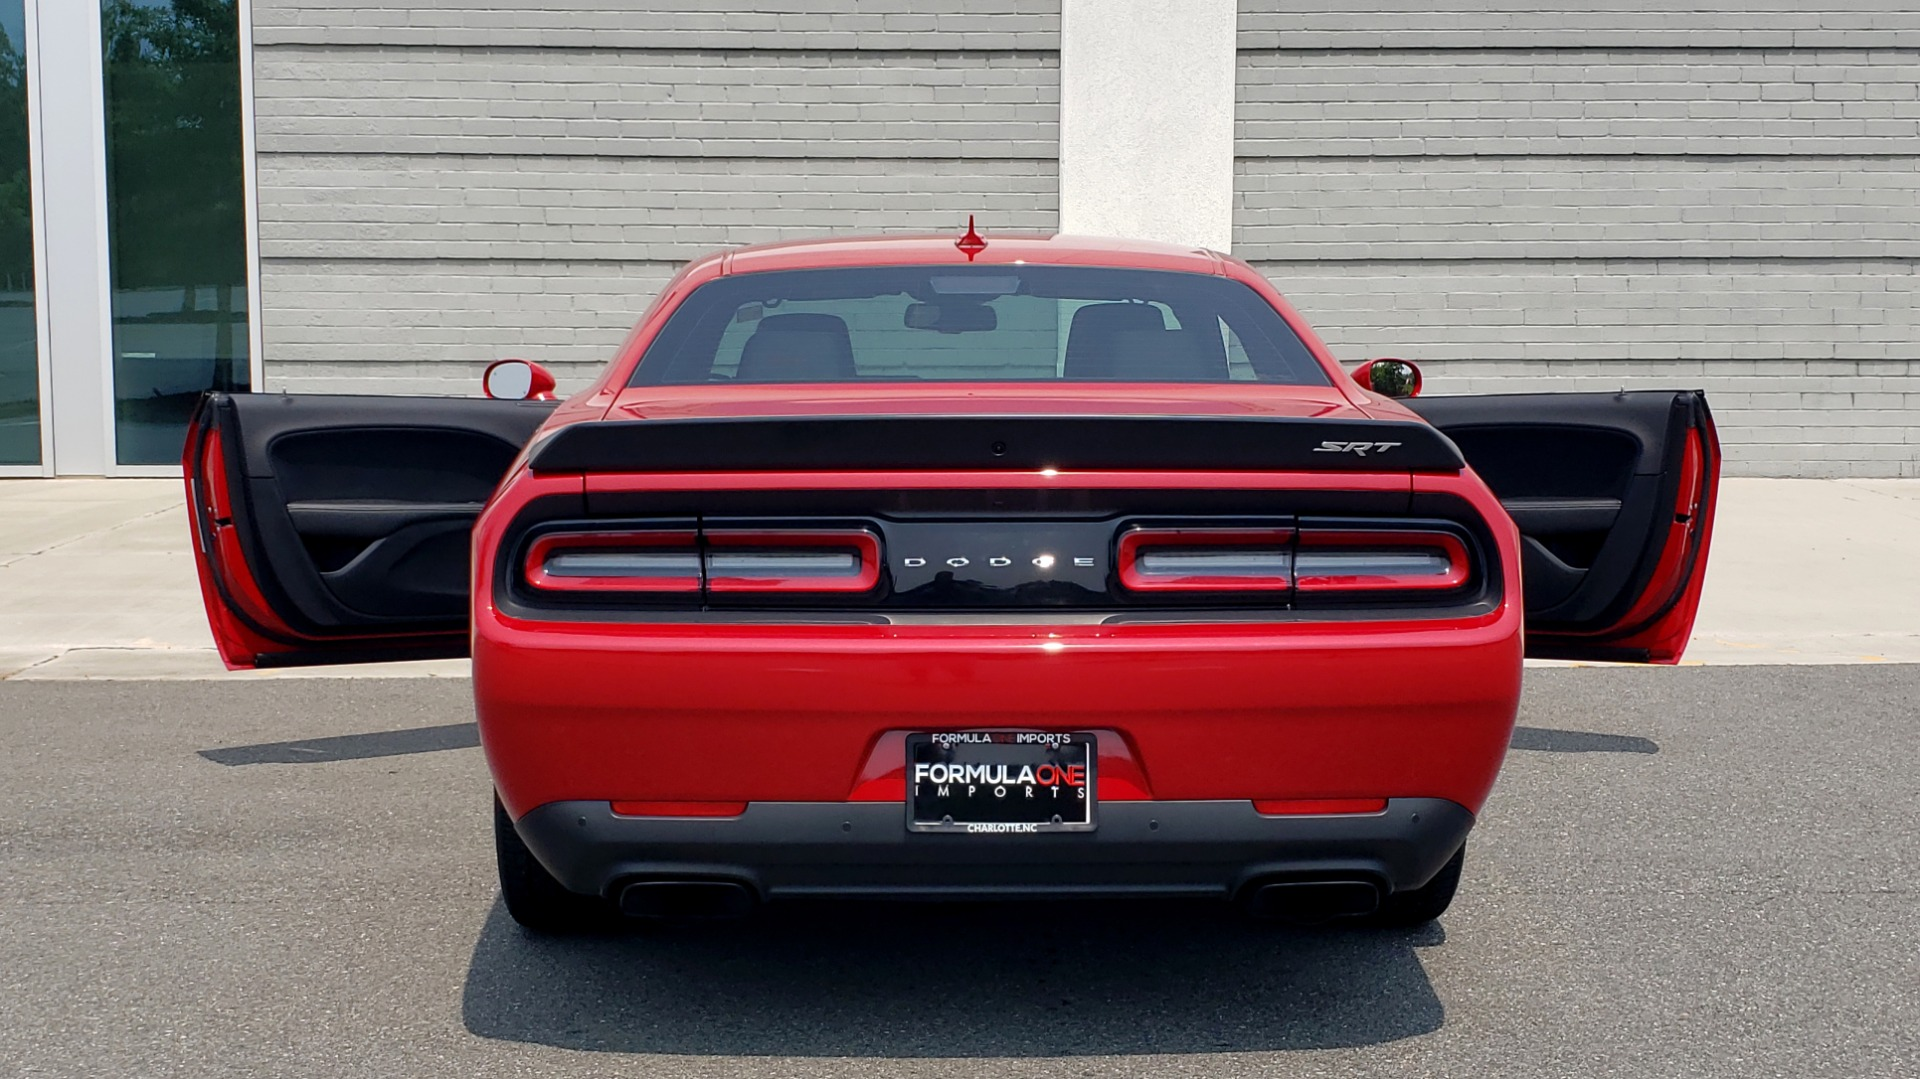 Used 2016 Dodge CHALLENGER SRT HELLCAT 707HP COUPE / AUTO / NAV / SUNROOF / H/K SND / REARVIEW for sale $60,995 at Formula Imports in Charlotte NC 28227 30